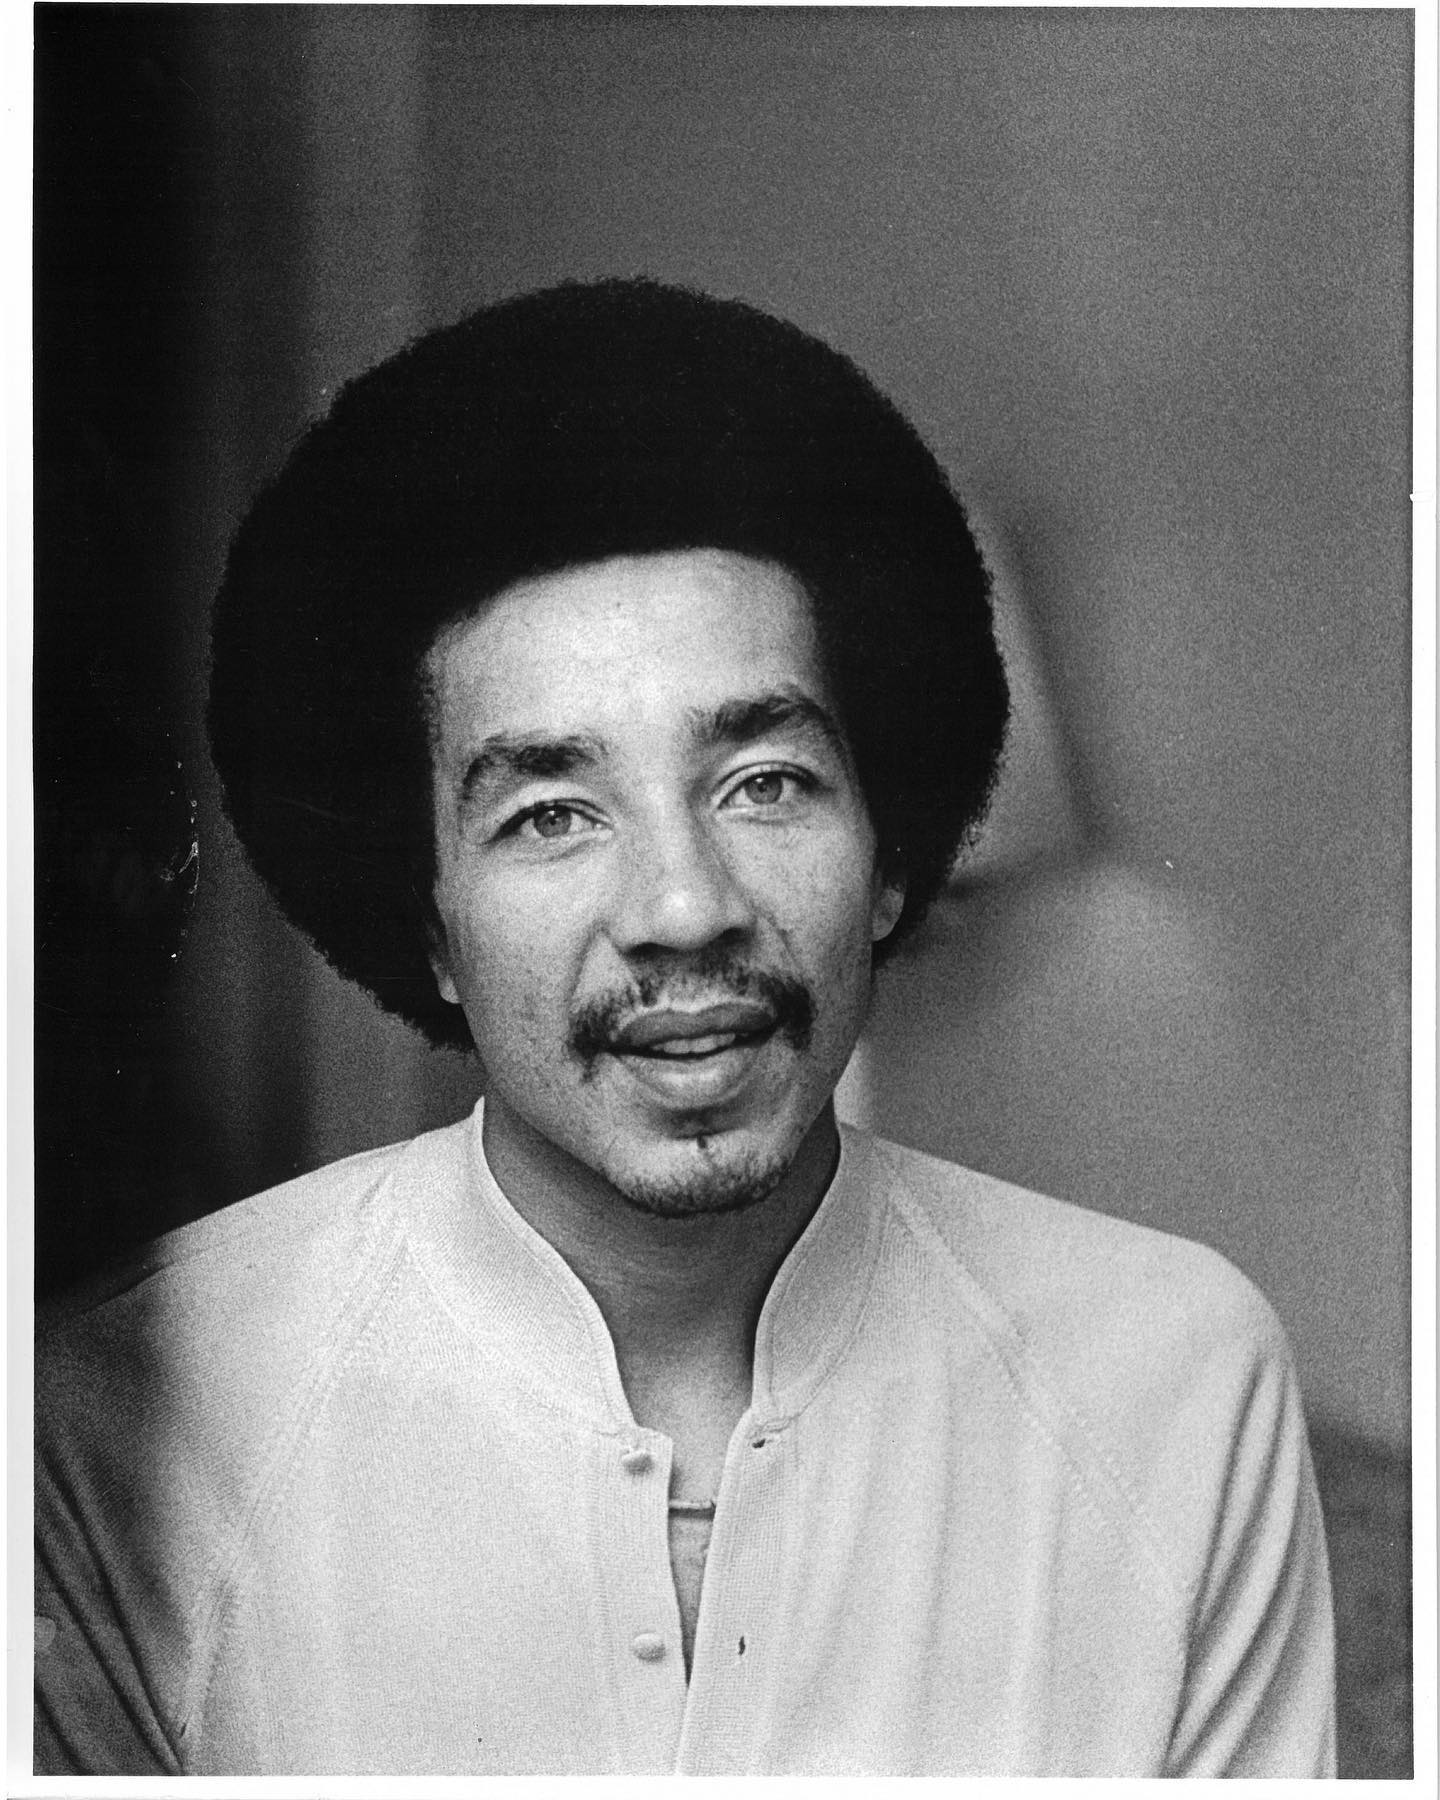 "Happy birthday Smokey Robinson, who was born #onthisday in 1940!   Robinson is known best for being part of the band, ""The Miracles,"" and as a solo artist. In 1955, Robinson and his friends Pete Moore, Ronald White, Bobby Rogers and Claudette Rogers formed a band called ""The Matadors,"" but their name was changed soonafter to ""The Miracles"" before setting out on tour. In 1957, the band met CEO of Motown Records Berry Gordy who offered the band a record contract. The Miracles then became one of the first bands signed to Motown Records. The band was largely successful between 1960 and 1970, and Robinson became one of the most coveted songwriters in th industry. He wrote songs for many artists including Marvin Gaye, Diana Ross, The Supremes and Steve Wonder and eventually became VP of Moton Records until 1988. He later left Moton Records and signed with SBK Records, under which he produced his latest album, ""Smokey and Friends,"" which featured many musicians including Elton John, James Taylor and Linda Ronstadt. Later in his life, he struggled with drug abuse but eventually got clean and went on to write an autobiography. Since then, he has been inducted into the Rock and Roll Hall of Fame, the Songwriter's Hall of Fame and was given a star on the Hollywood Walk of Fame. He was also awarded with the National Medal of Arts, the Heritage Award at the Soul Train Music Awards, has been conferred the degree of Doctor of Music by Howard University and has won multiple Grammy Awards. #BlackHistoryMonth  📷©️Fred W. McDarrah/MUUS Collection   #smokeyrobinson #themiracles #happybirthday #blackhistory #music #musician #portrait #photography #photographer #photooftheday #picoftheday #pictureoftheday #blm #blacklivesmatter #fredmcdarrah #muuscollection #history #americanhistory #howarduniversity #rockandrollhalloffame #soultrainawards #soultrain #lindaronstadt  #jamestaylor #eltonjohn #songwriter #motown #motownrecords"